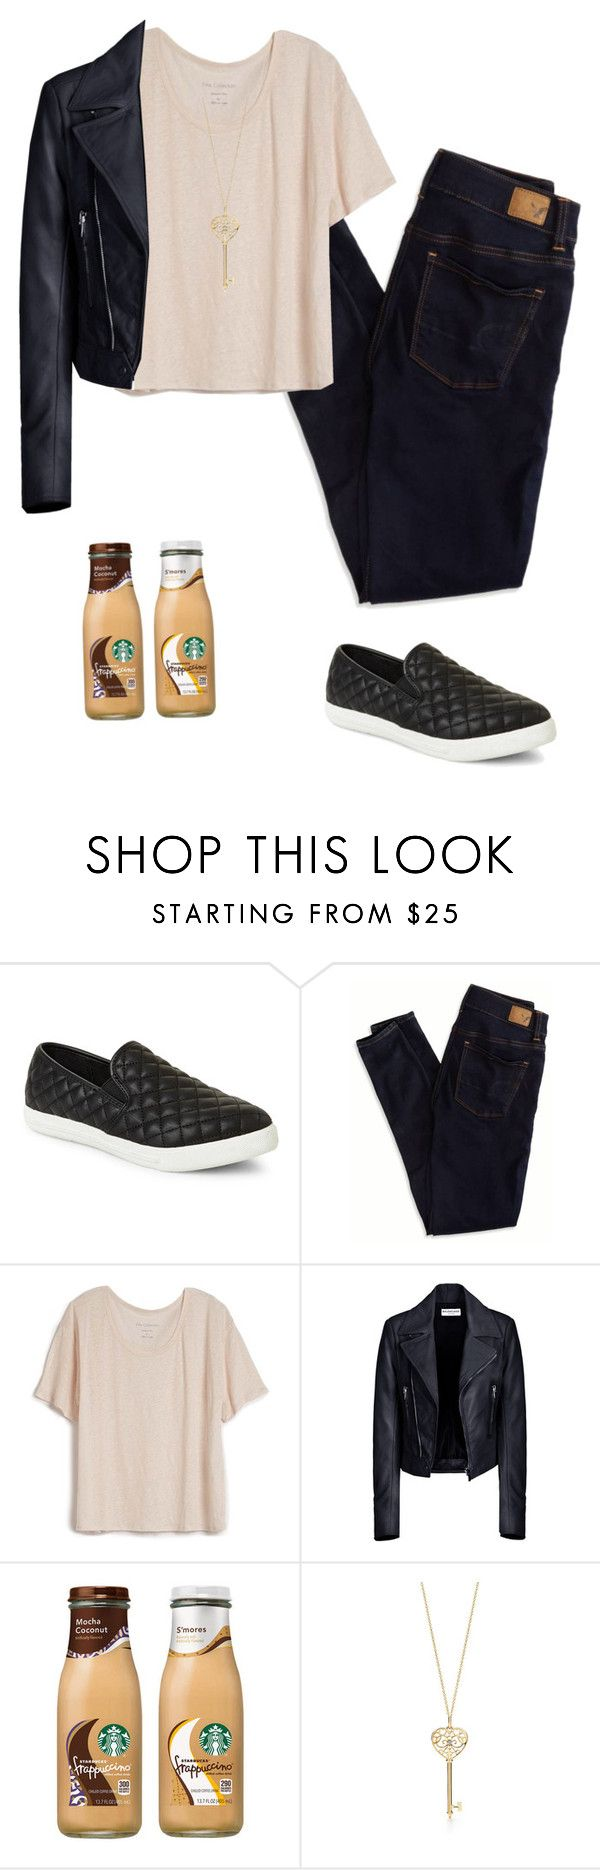 """""""Casual"""" by clarityclark ❤ liked on Polyvore featuring Steve Madden, American Eagle Outfitters, Fine Collection and Balenciaga"""